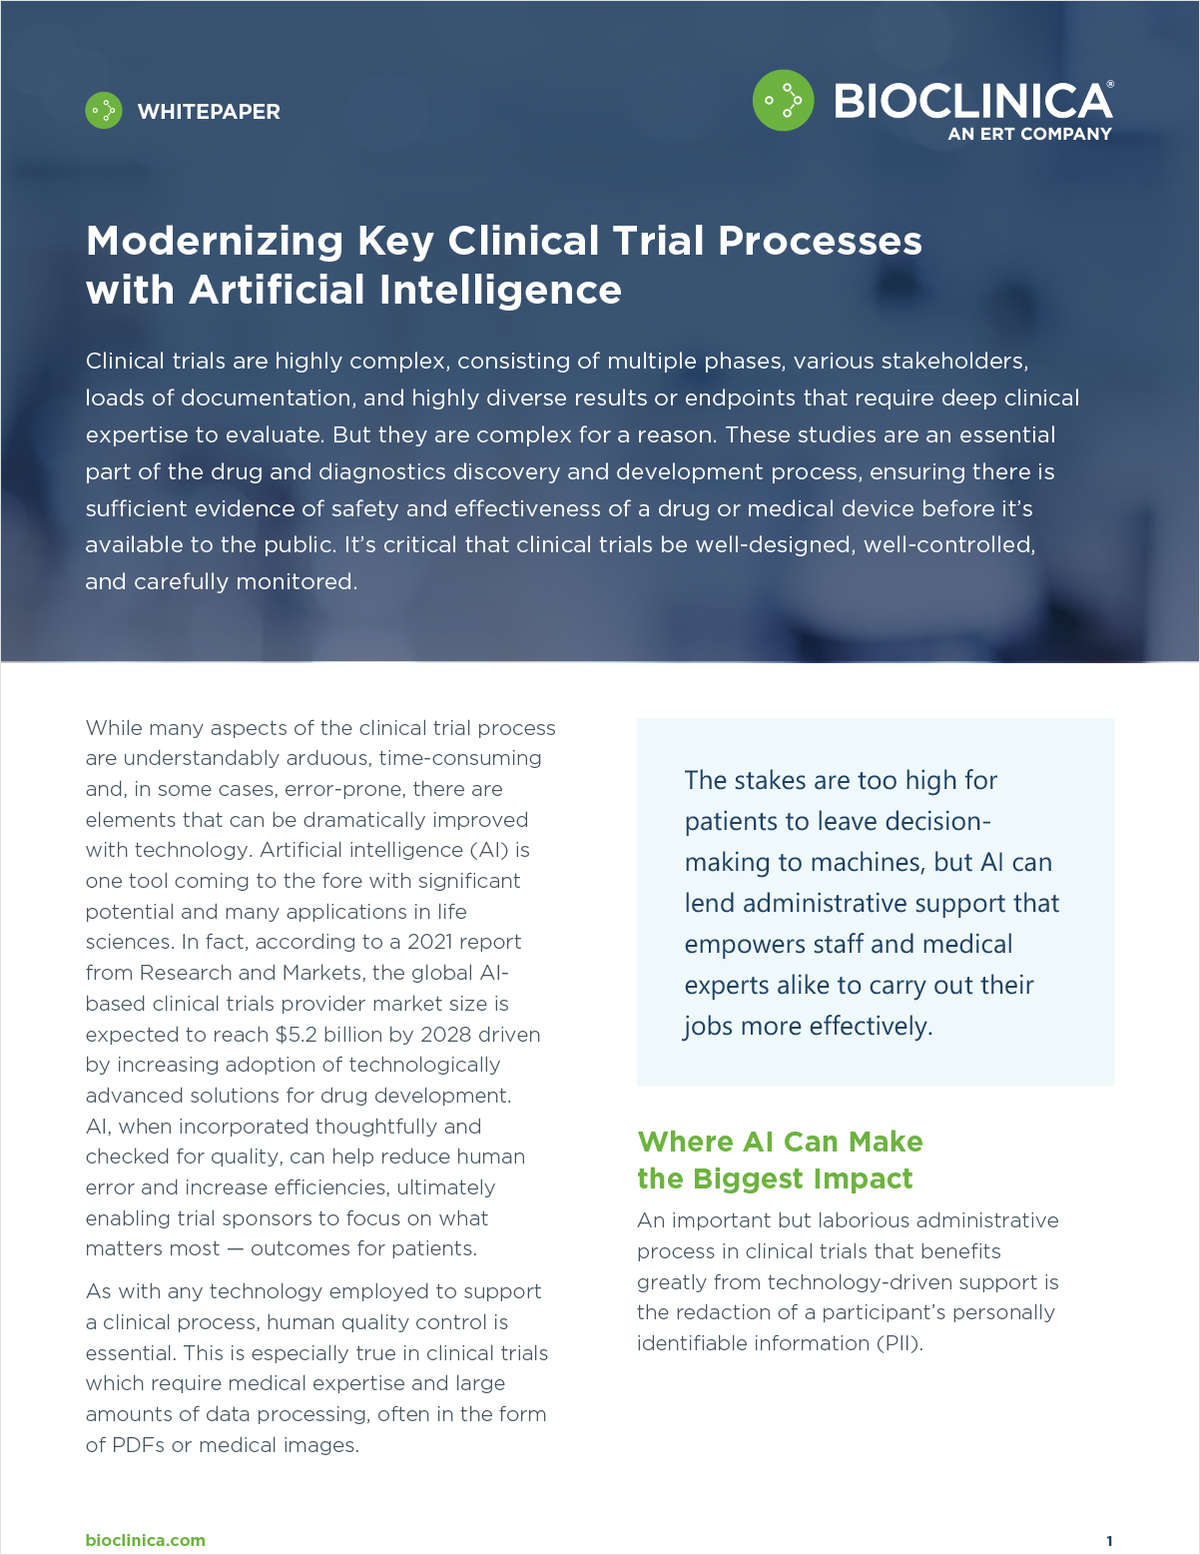 Modernizing Key Clinical Trial Processes with Artificial Intelligence